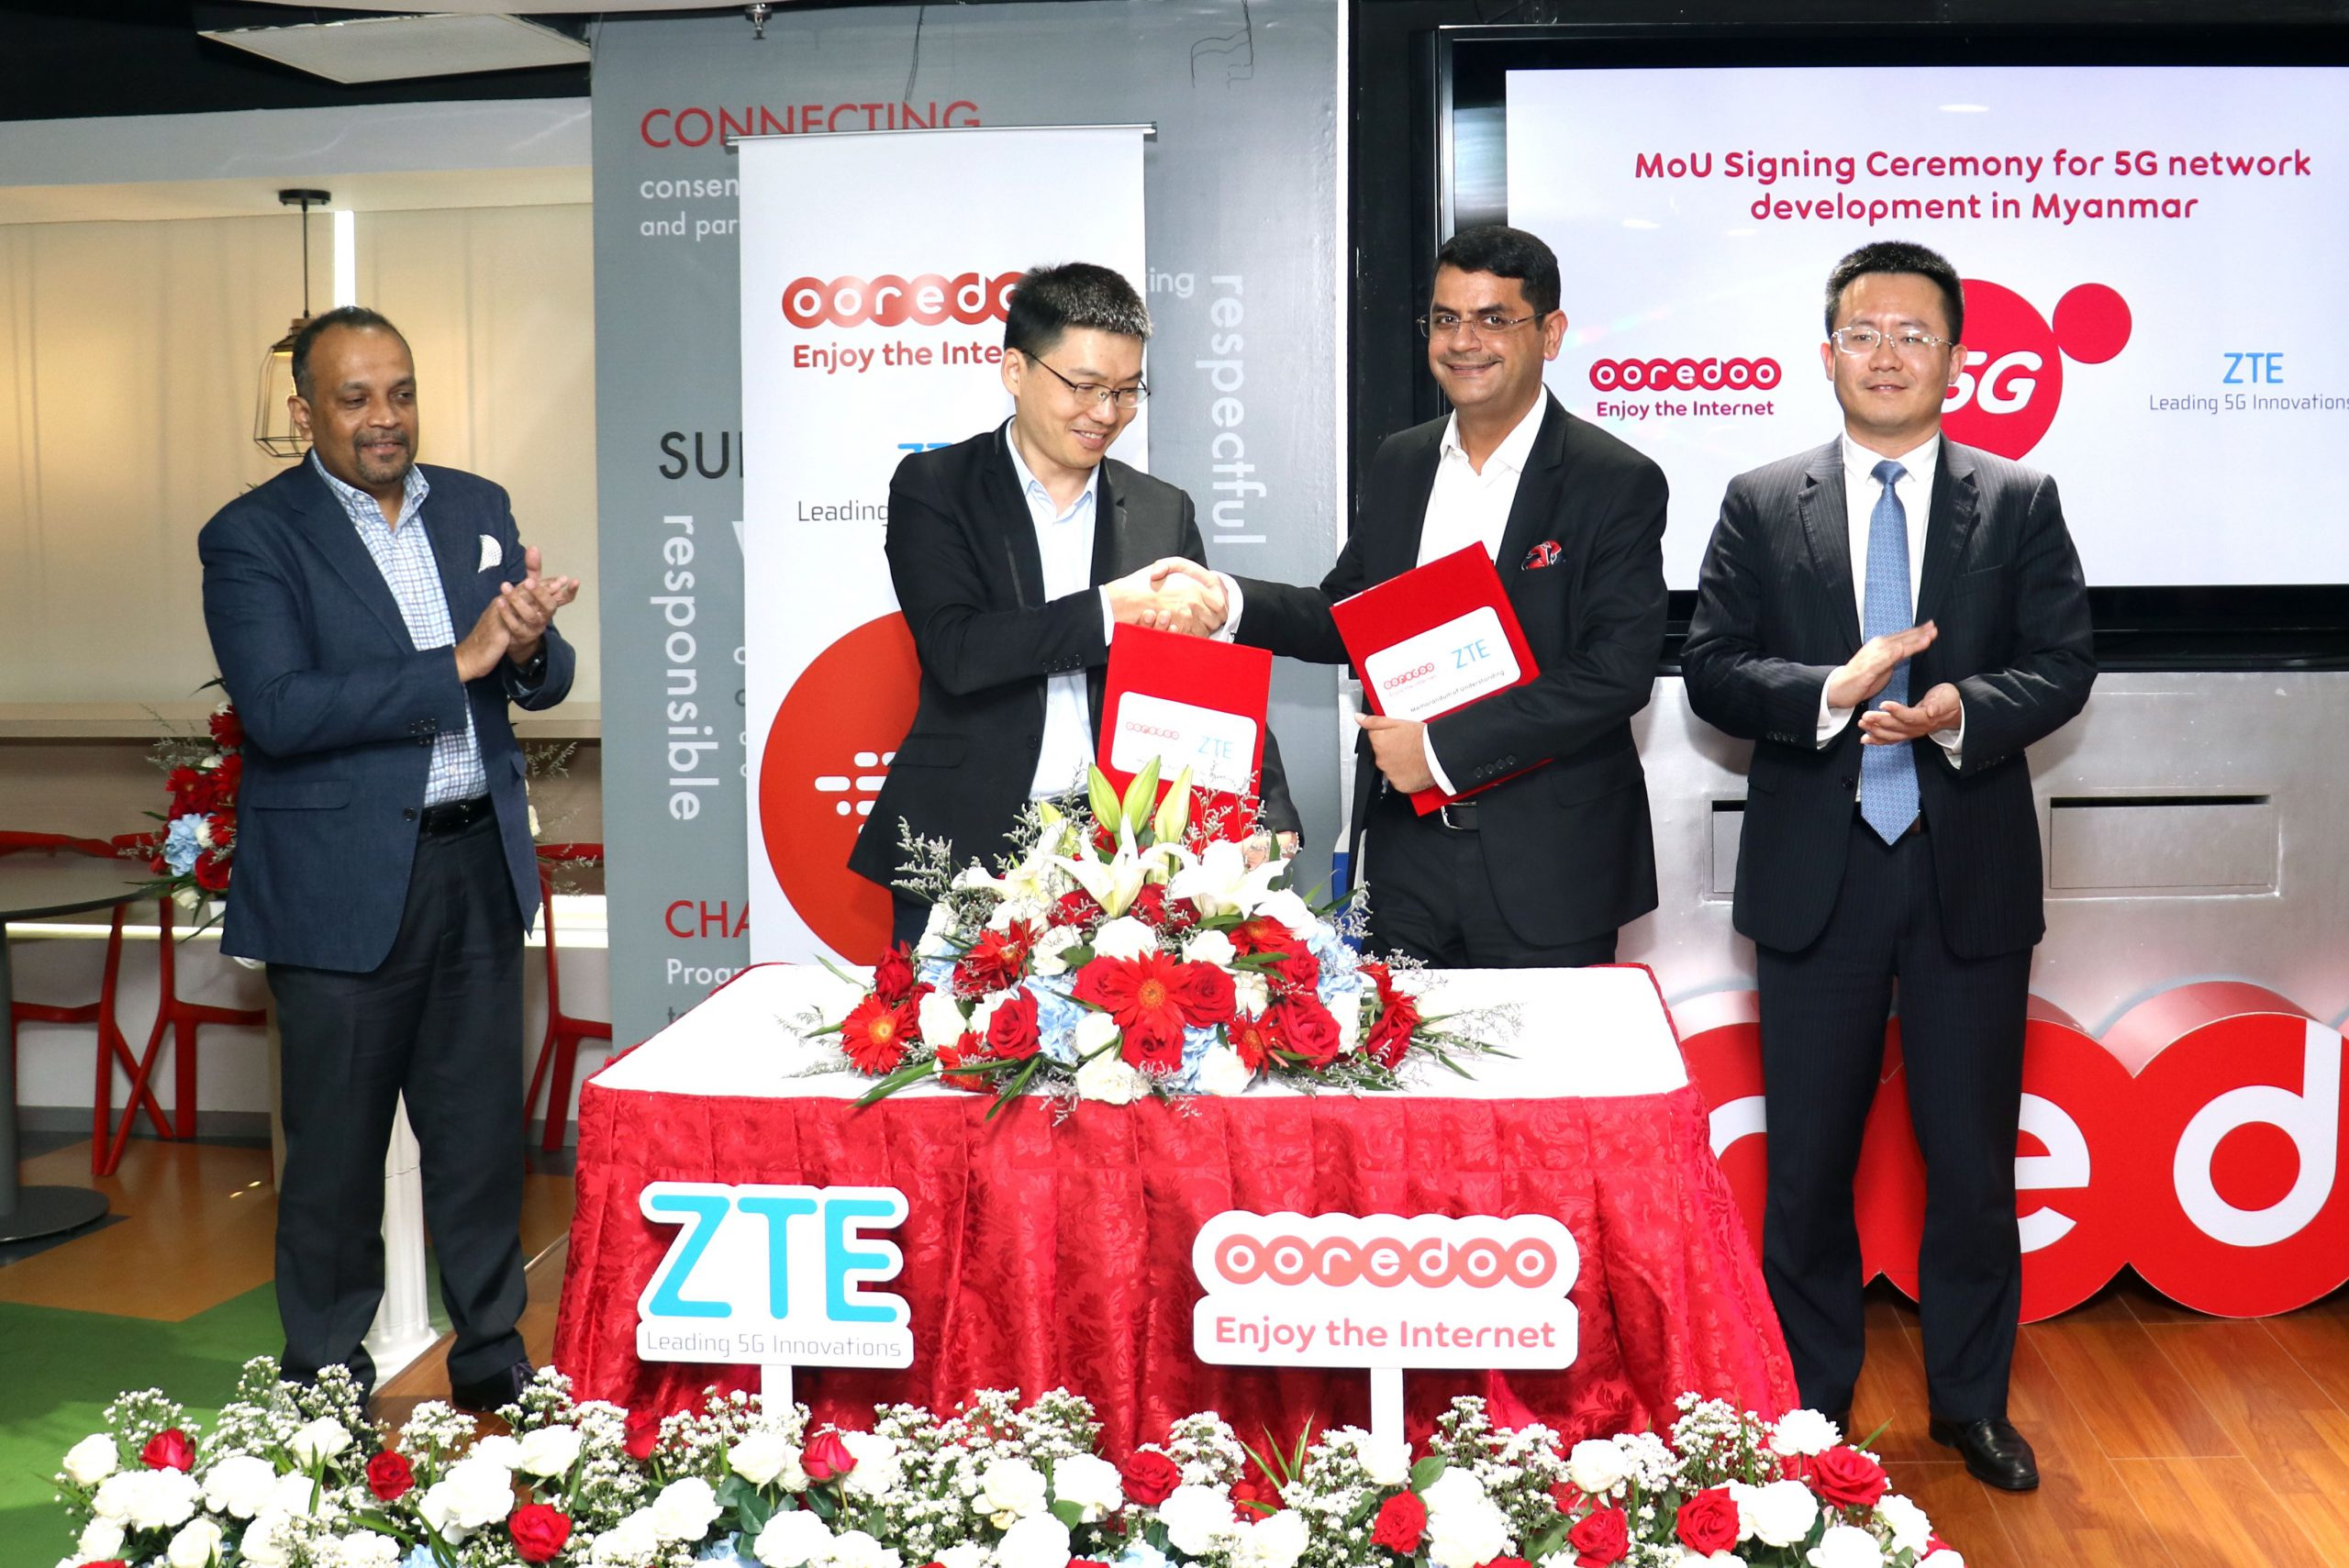 mou_exchanging-ooredoo_acting_ceo_and_zte_ceo_witness_ooredoo_ctio_and_zte_corp_svp.jpeg